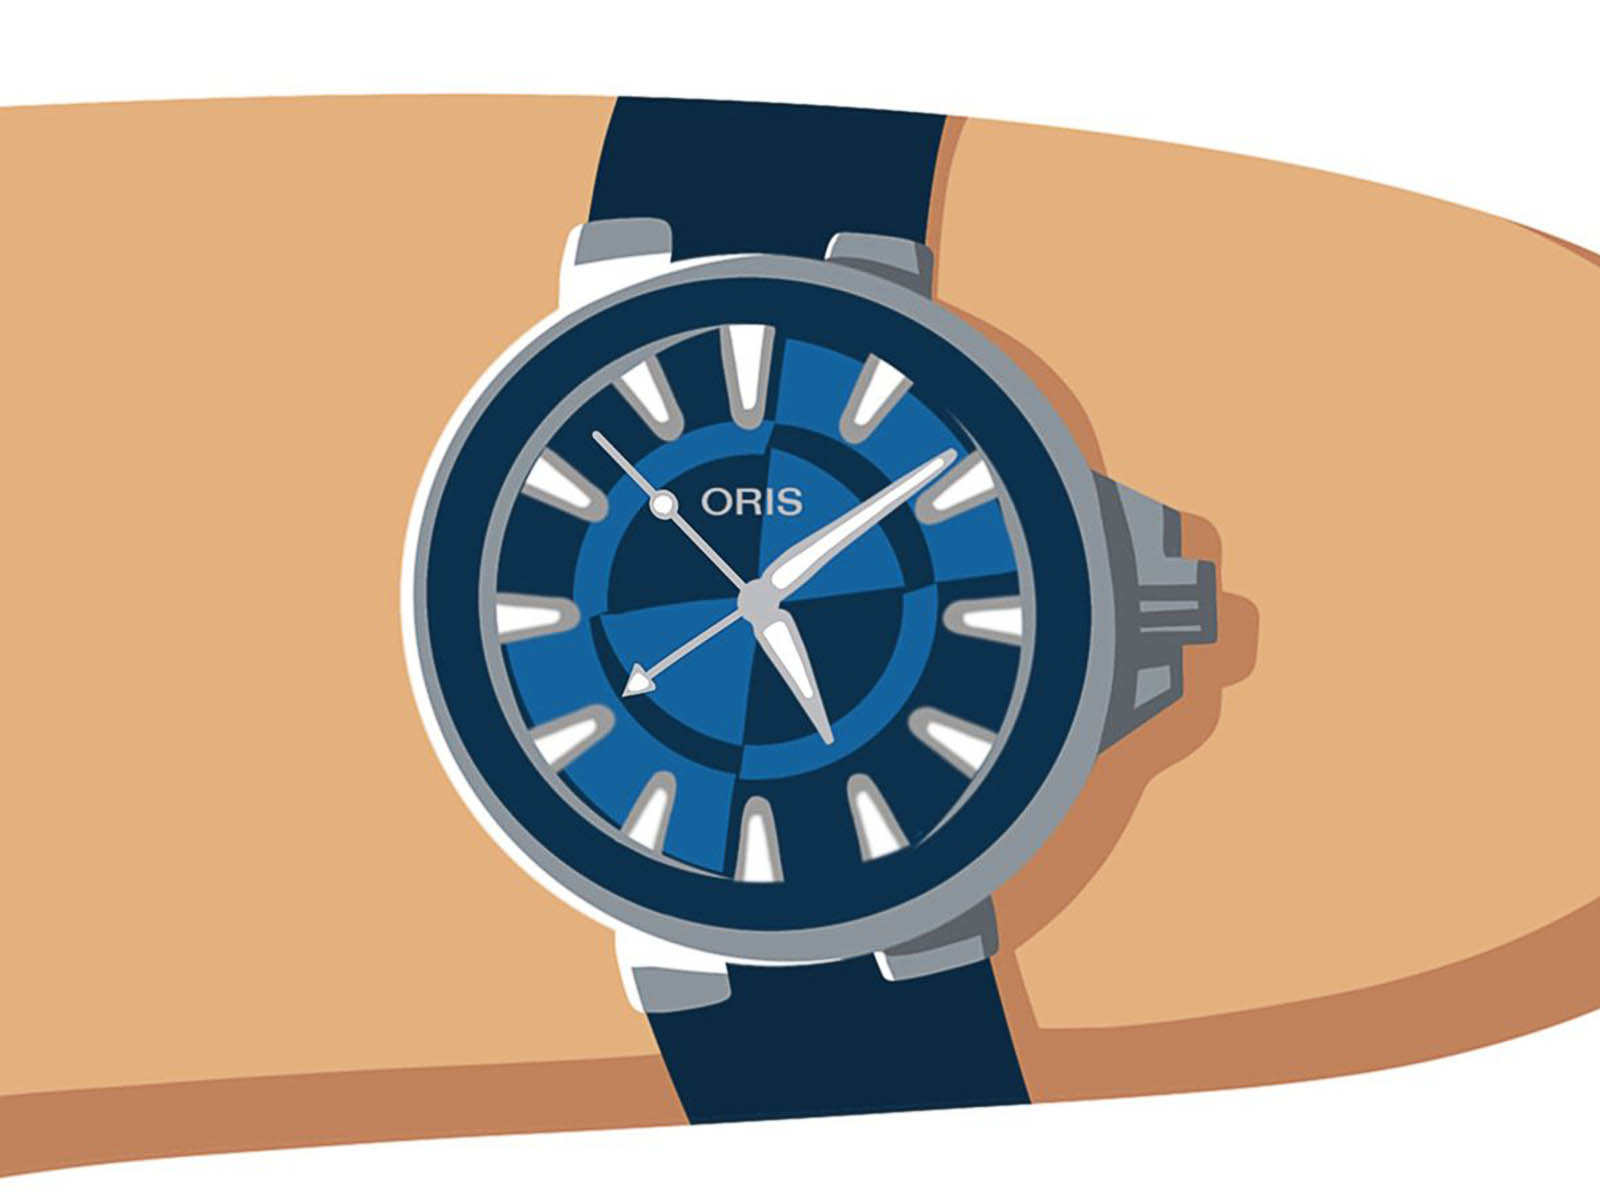 oris-supports-local-heroes-3.jpg